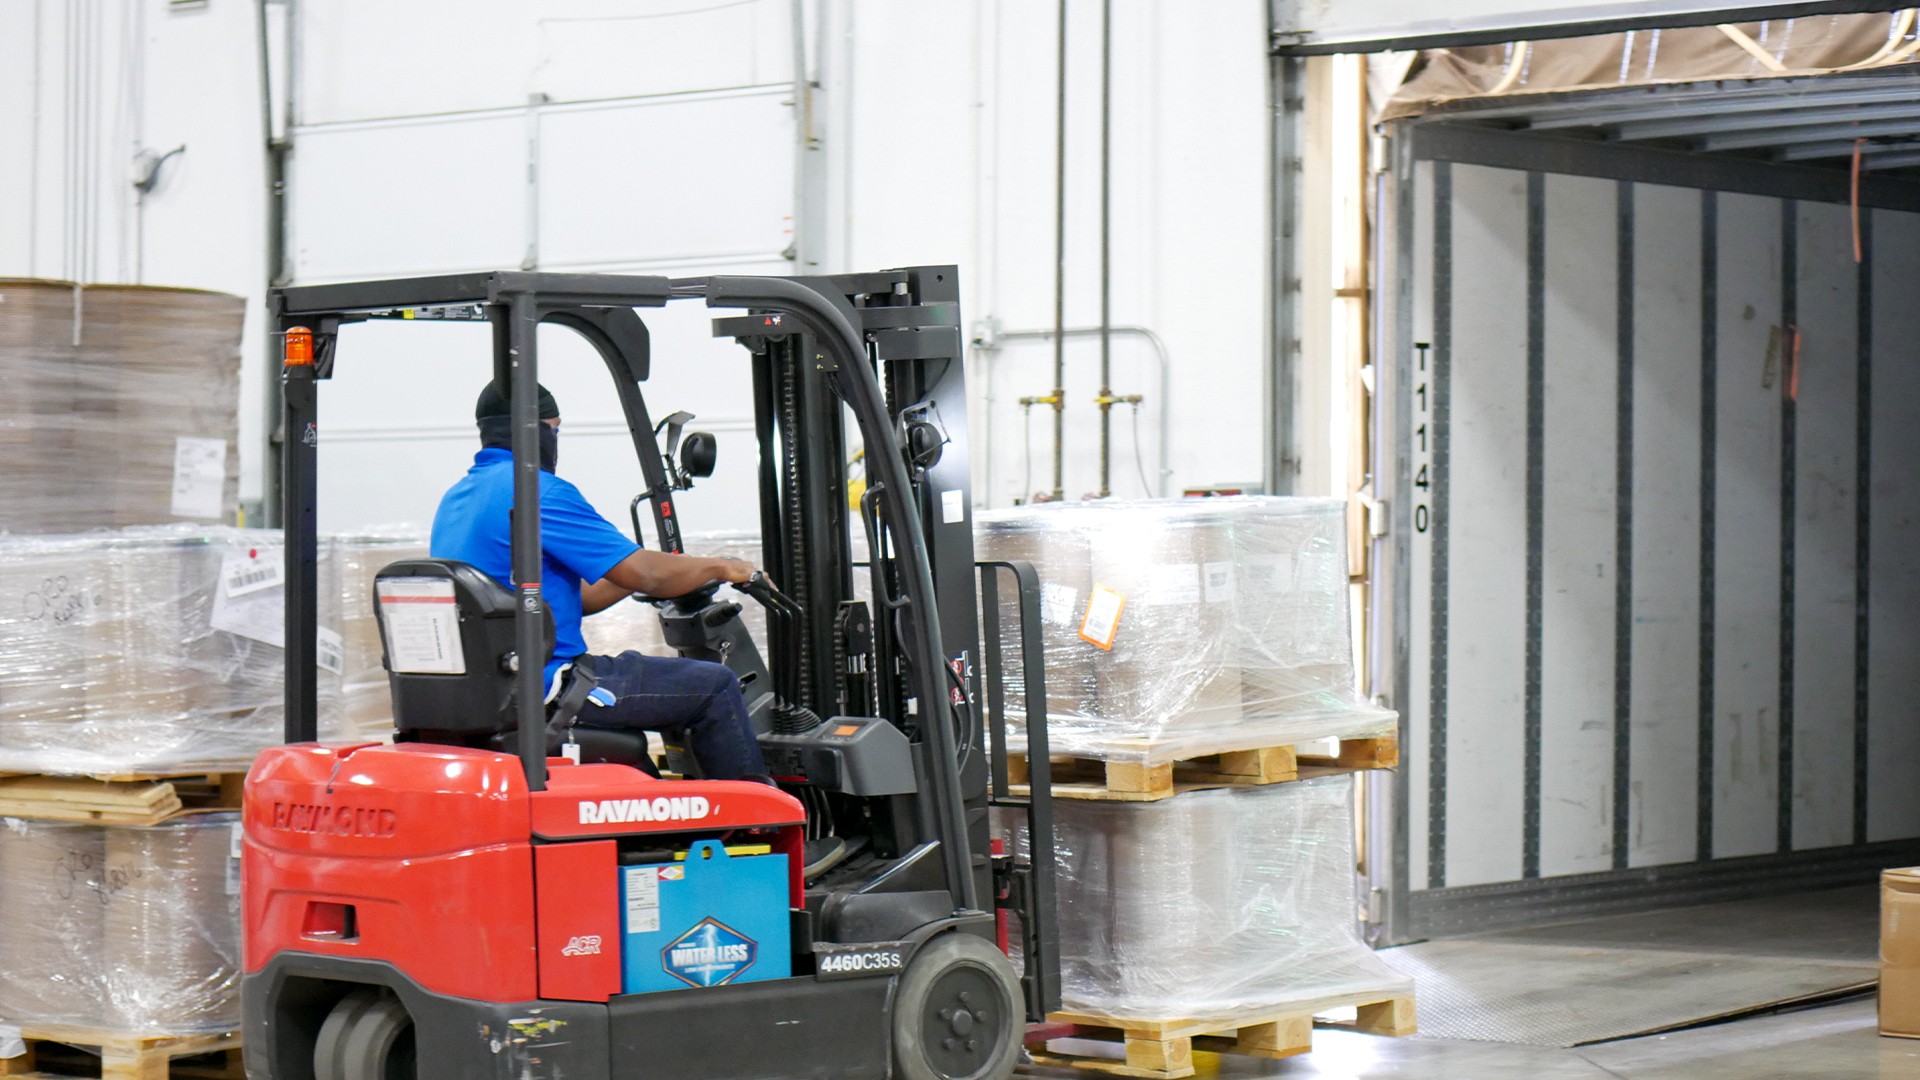 warehouse technician loading API materials to truck using forklift